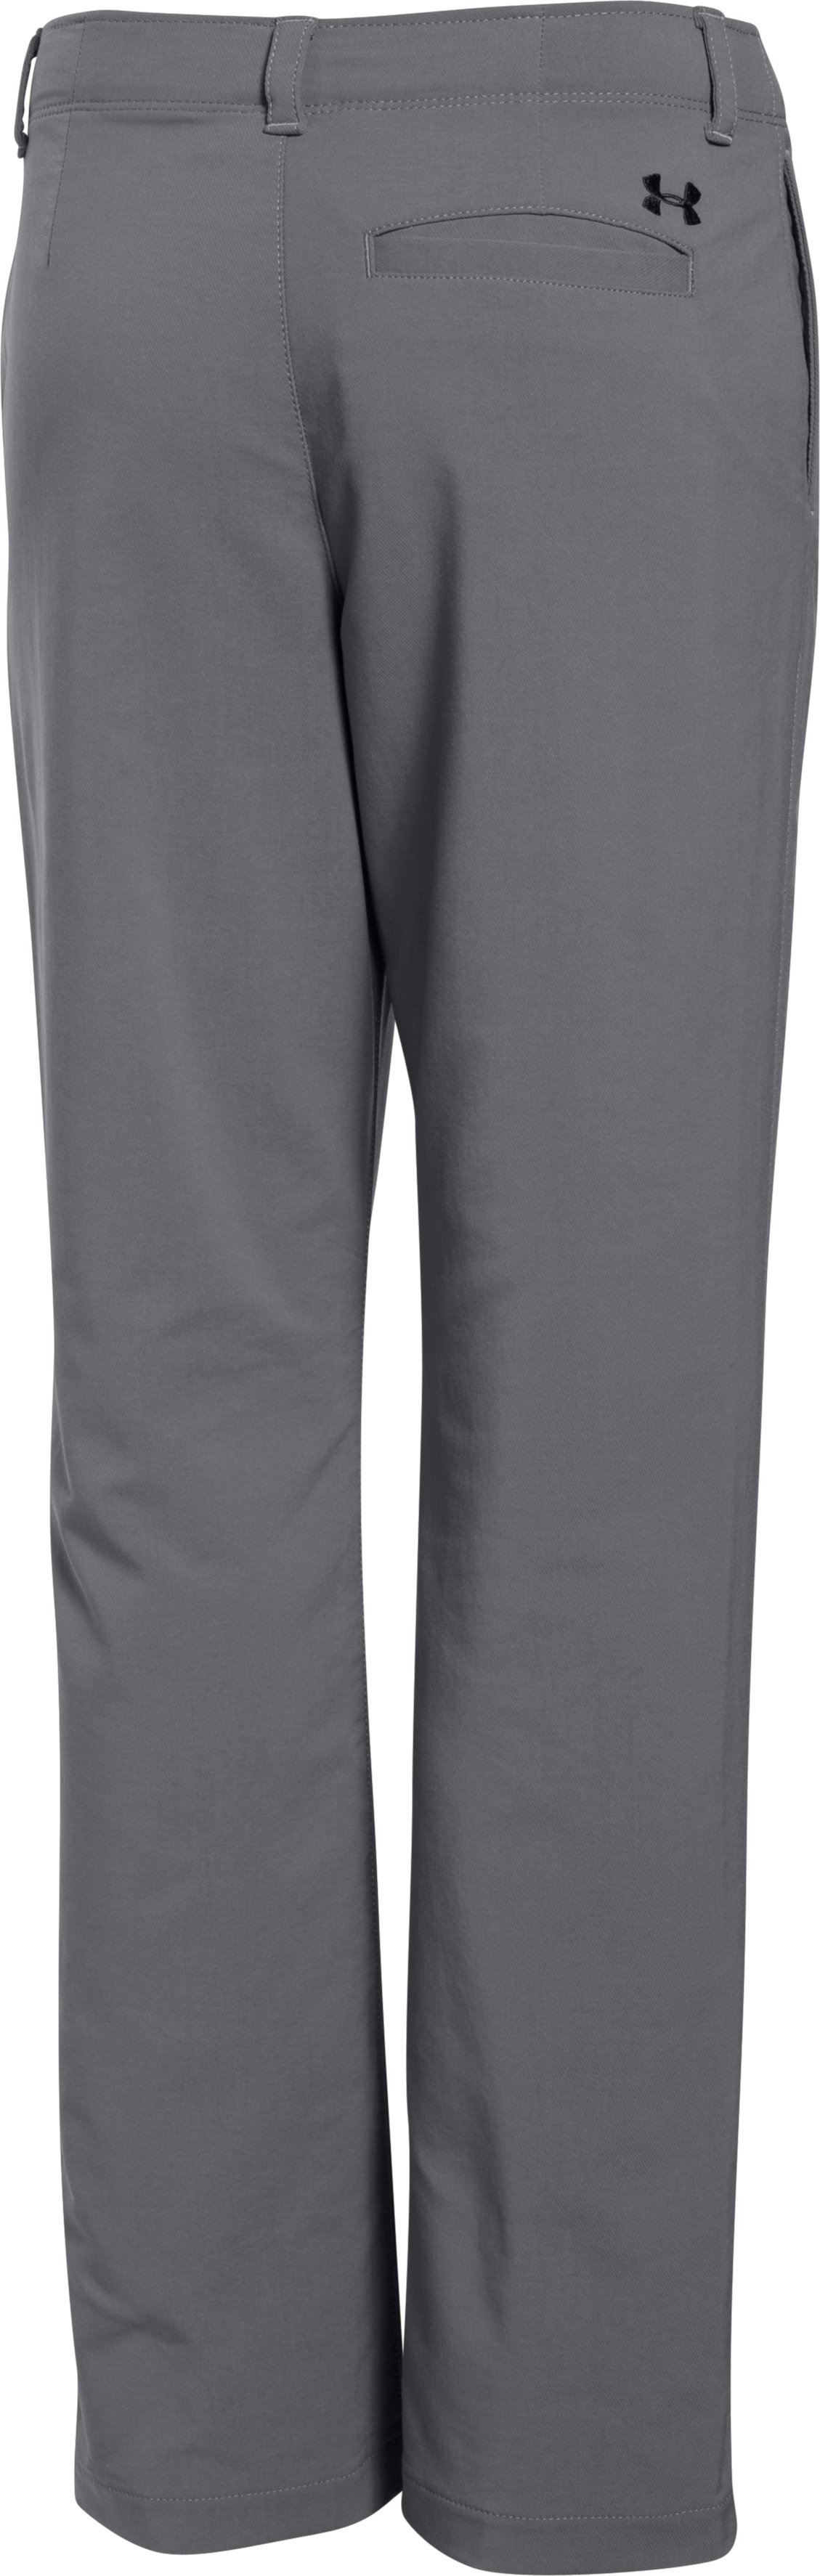 Boys' UA Match Play Pants, Graphite, undefined